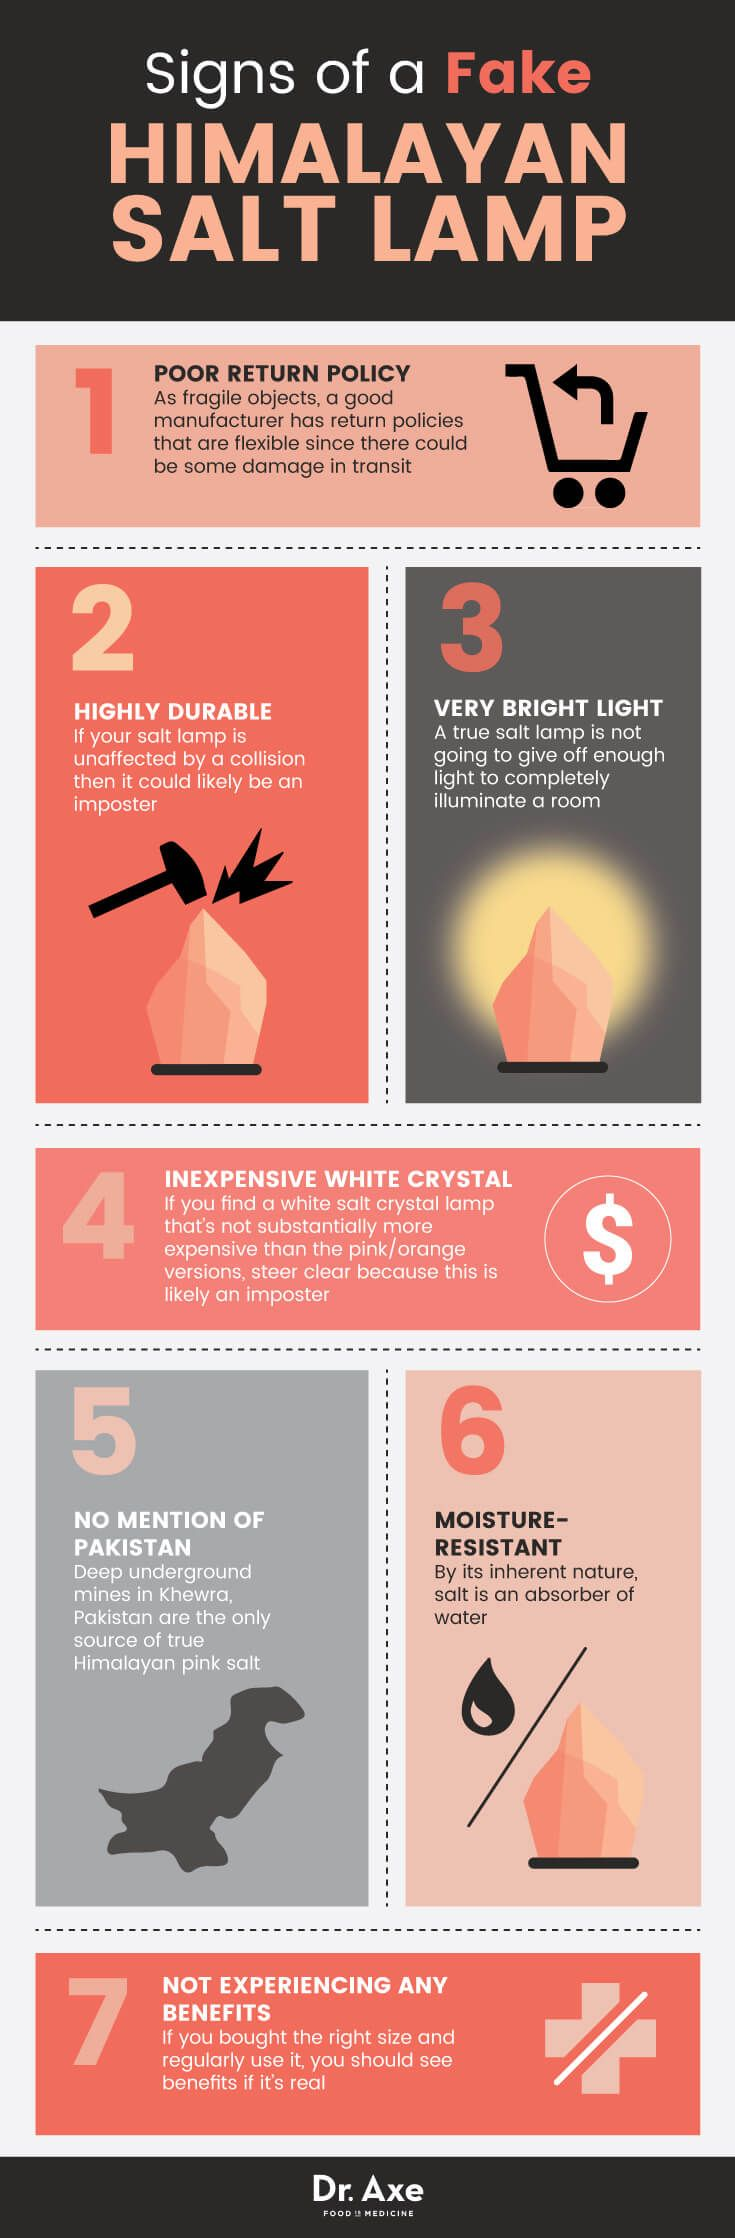 Real Salt Lamp Gorgeous 7 Warning Signs Your Salt Lamp Is An Imposter  Himalayan Salt Review